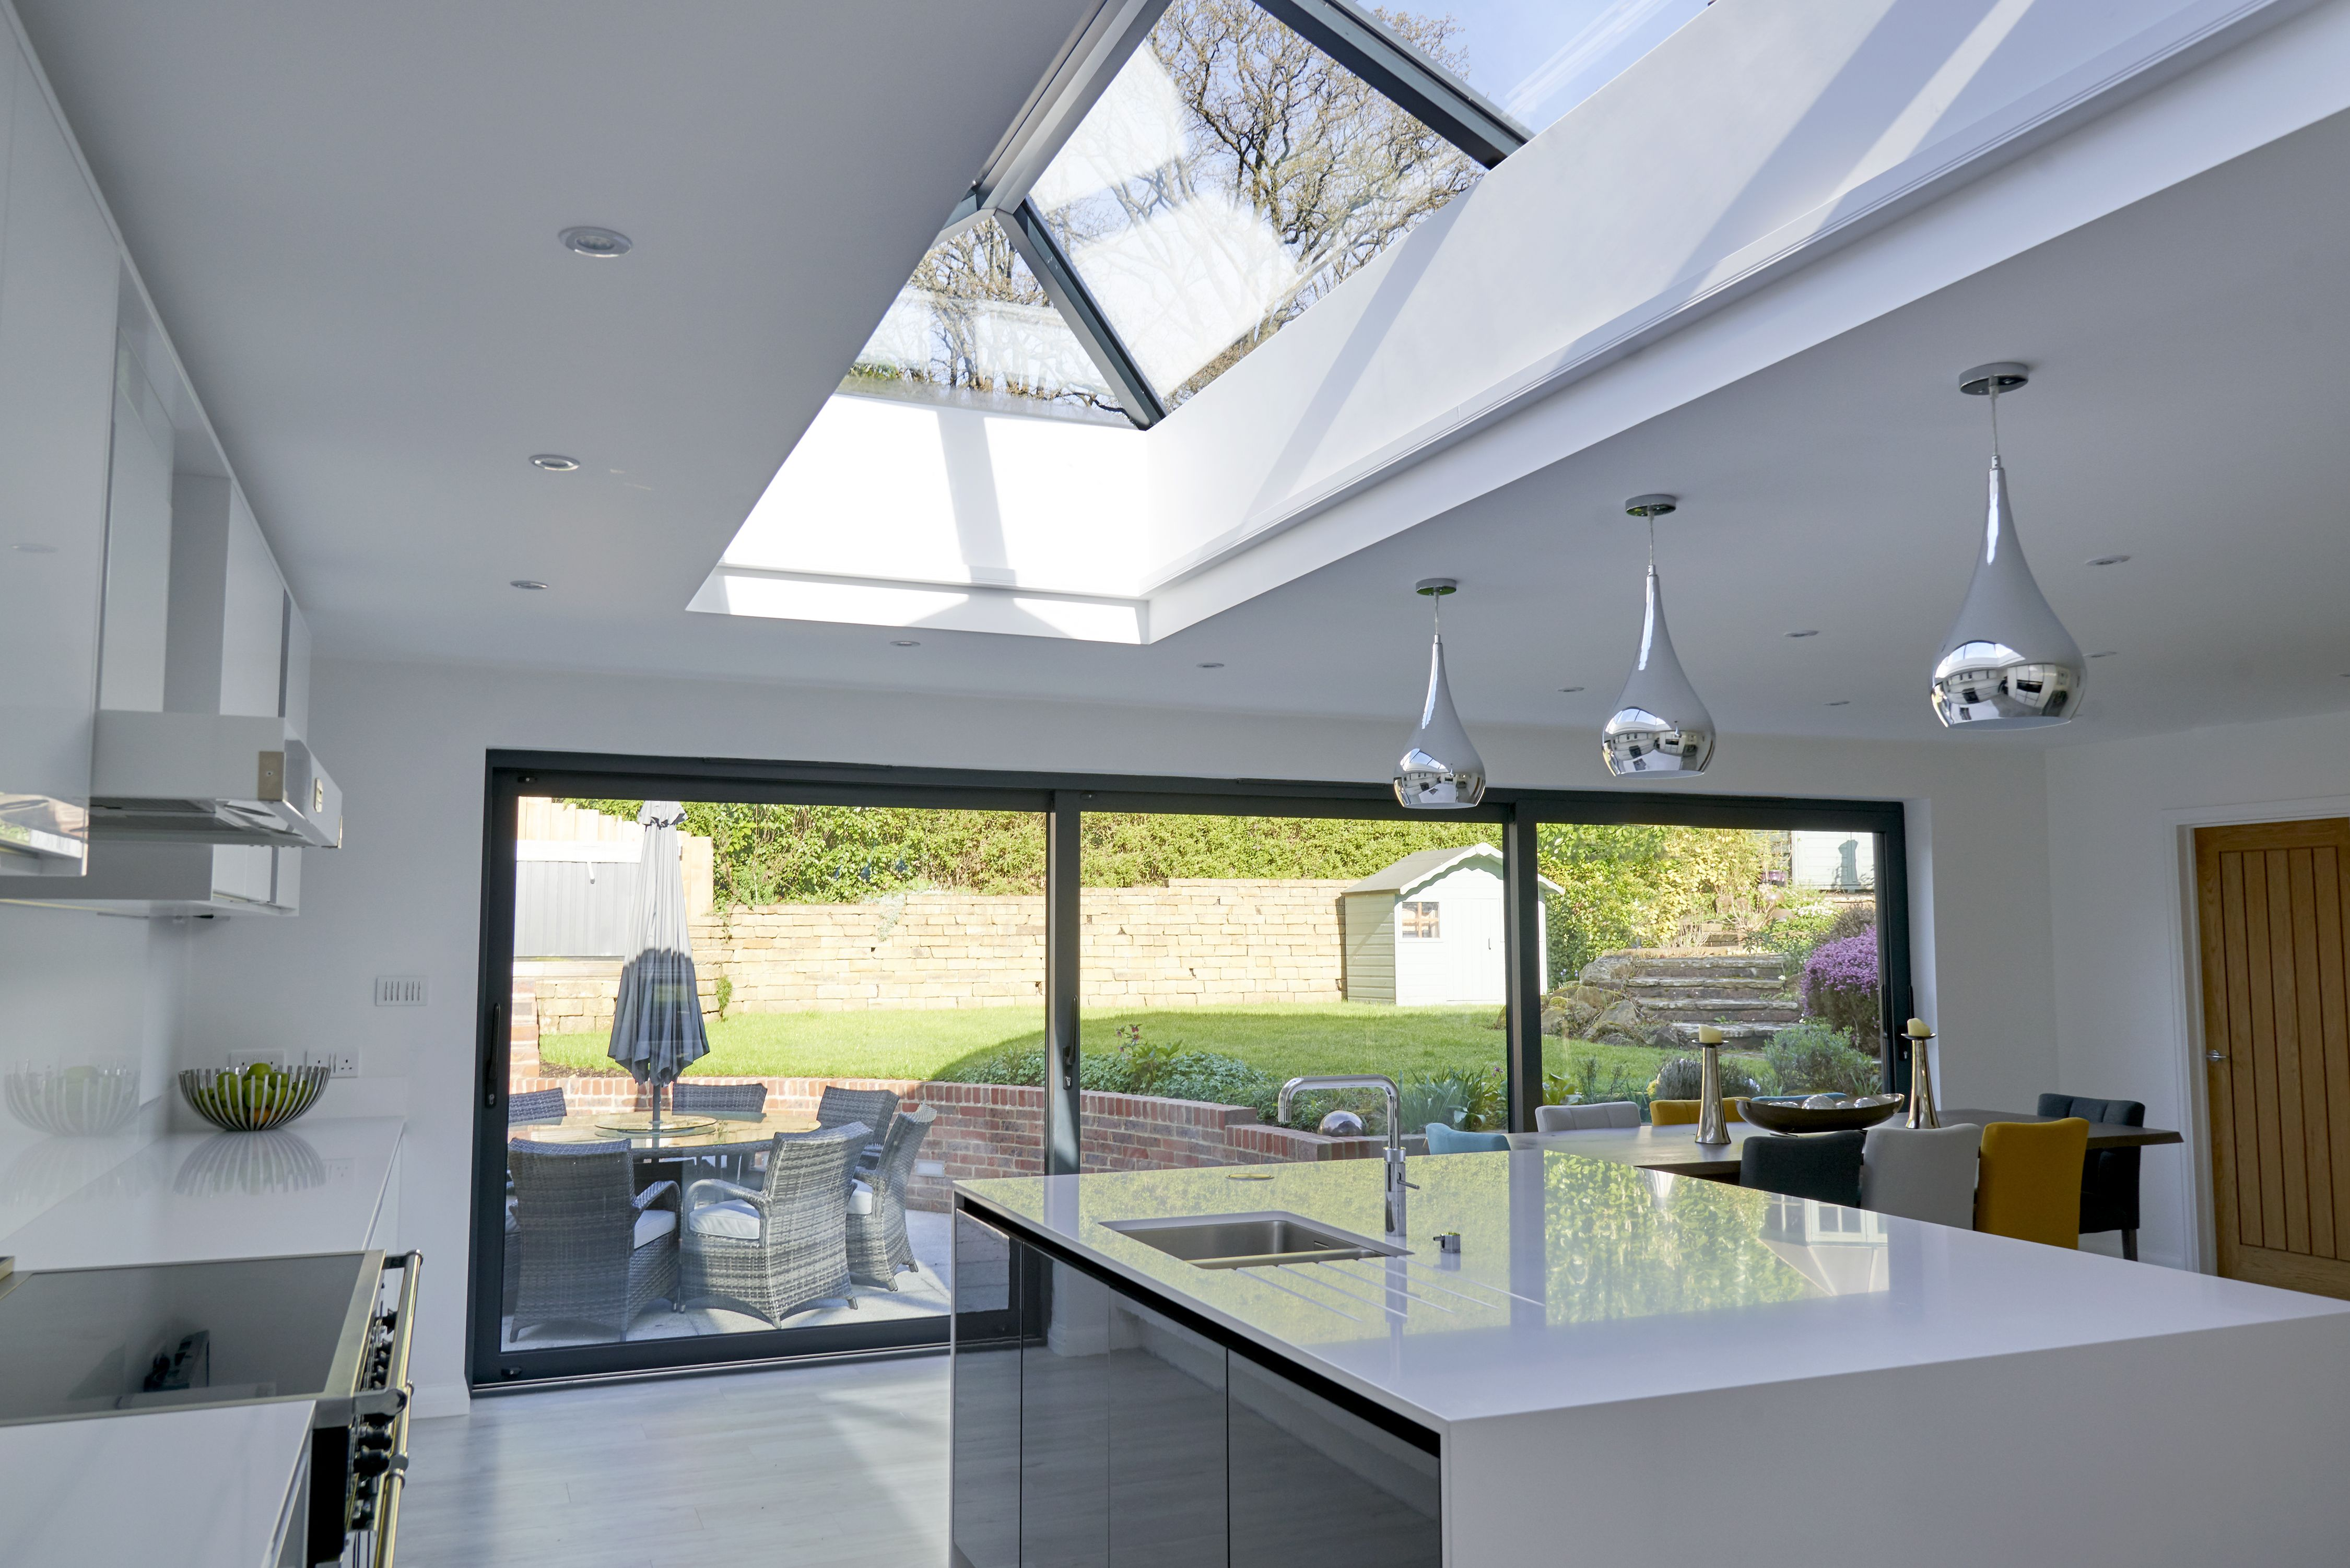 This beautiful Ultrasky Lantern Roof has been fitted on a